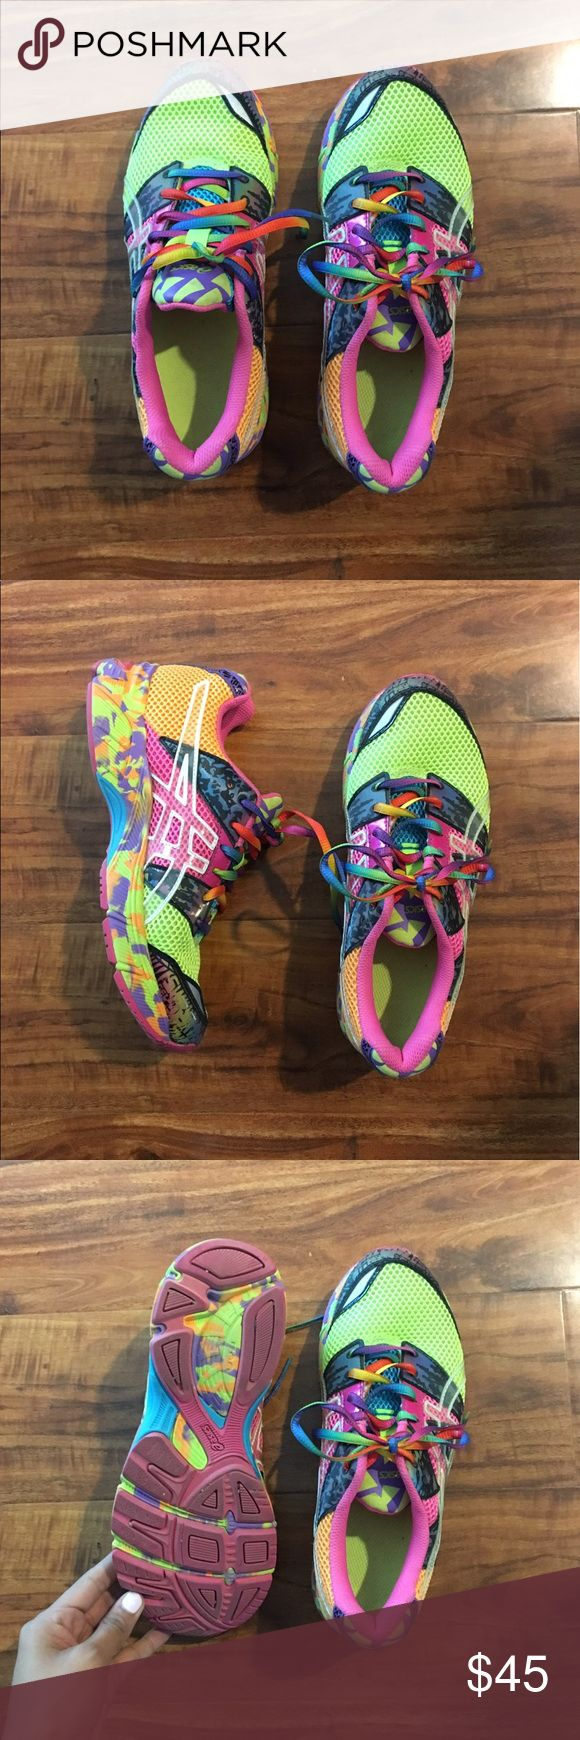 Asics - Neon Running Shoes Sz 51/2 or 7 women's These eye catching shoes are so great for long distance runs because they're comfortable and cute. They are a size 5 1/2 in children's which translates to a 7 in women's. Asics Shoes Sneakers